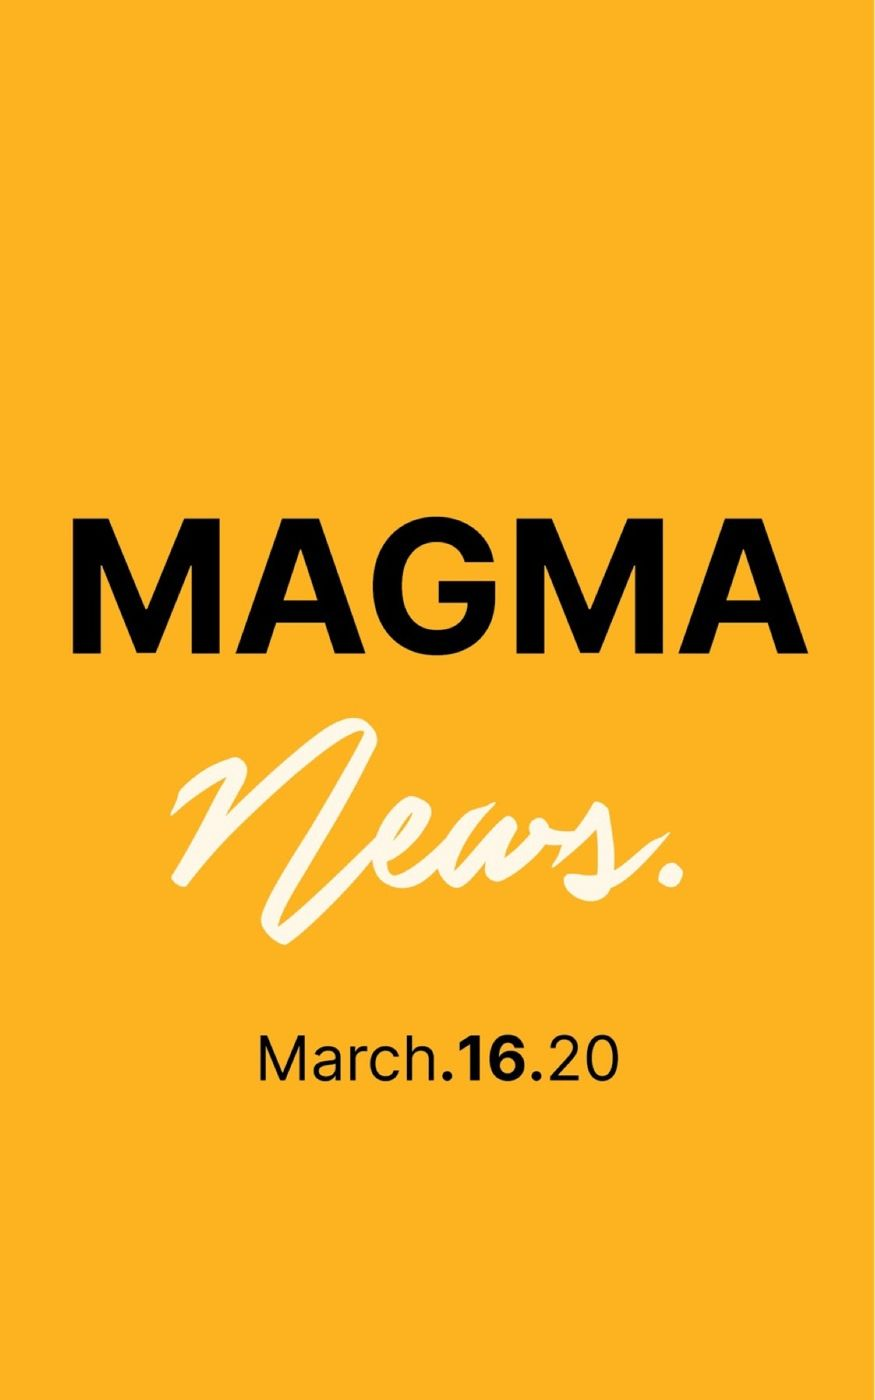 Magma News | March 16, 2020  -Alibaba co-founder Jack Ma has sent the first shipment of surgical masks and coronavirus test kits to the US. -Trump urges U.S. to halt most social activity in virus fight, warns of recession. -NFL says April Draft still on. Closed to the public. -Penguins explore Shedd Aquarium during coronavirus closure. Gives the world a much needed break on the internet. -How the coronavirus spread from animals to humans?  Check back every Monday, Wednesday & Friday.